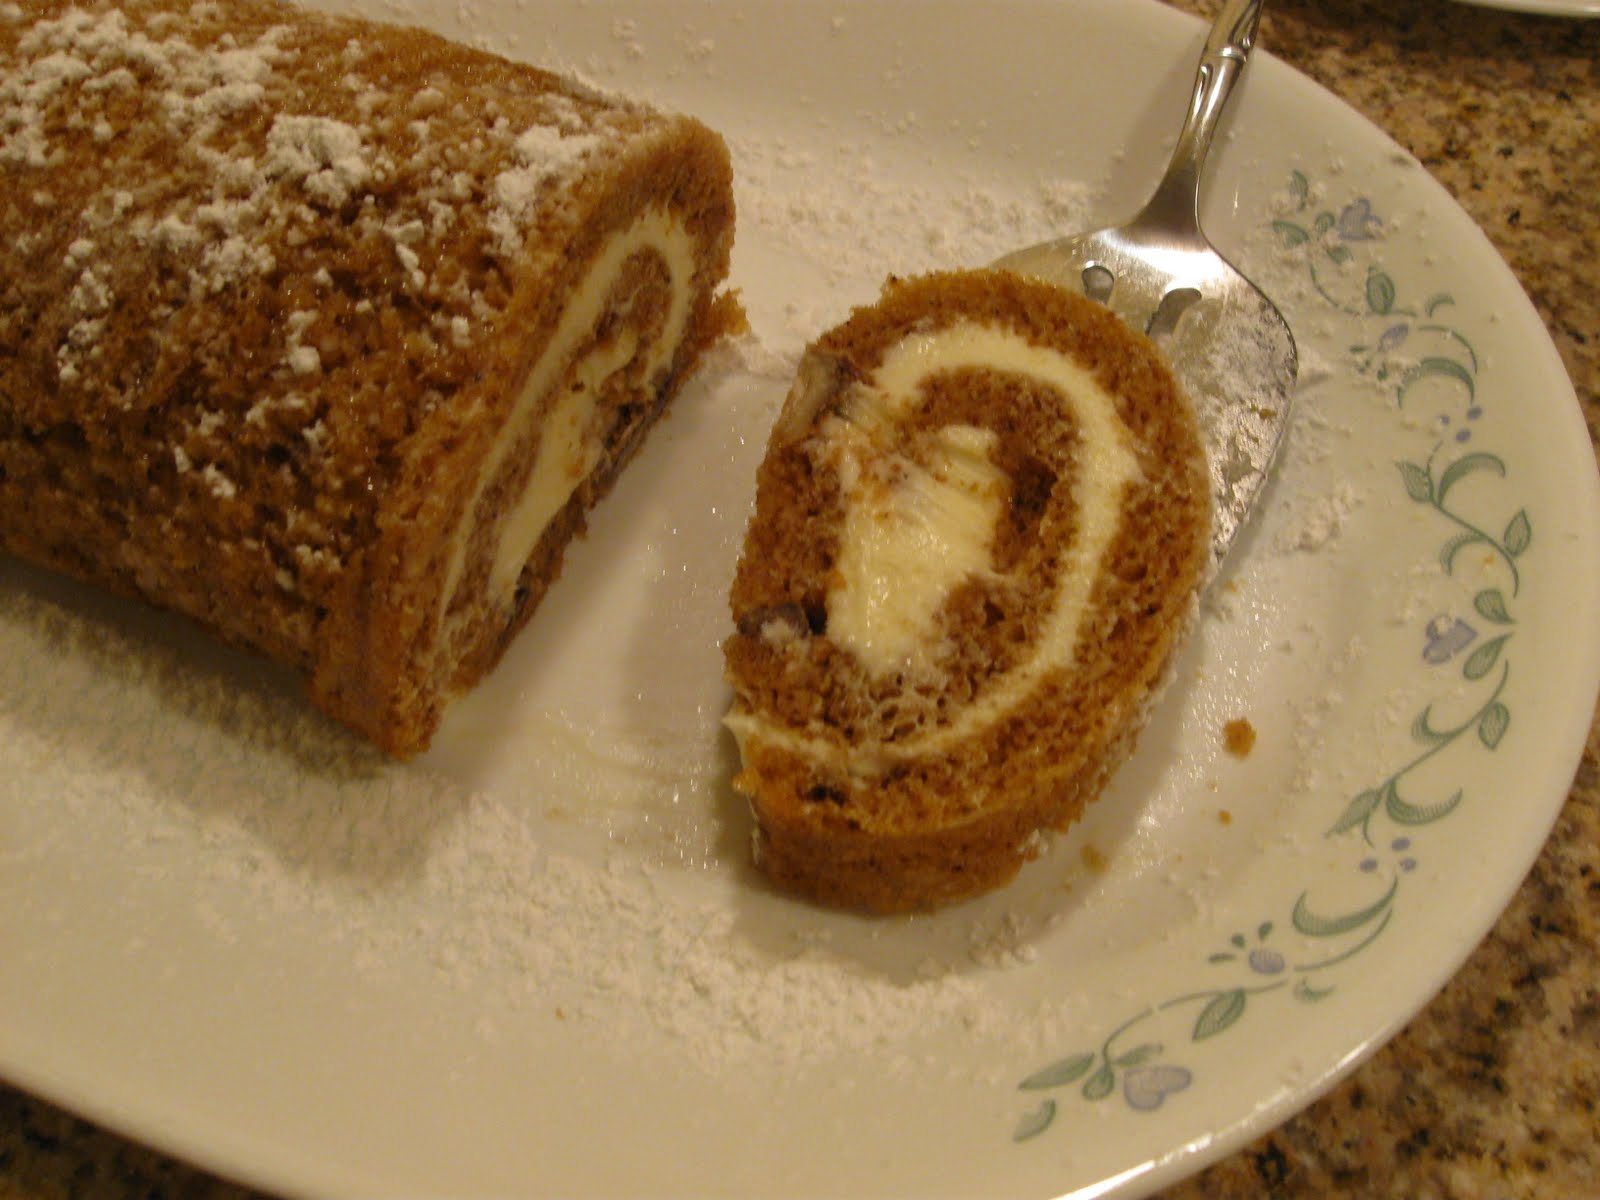 Carrot Cake Recipe Jelly Roll Pan: Cattapan's Cookies & Cakes: Pumpkin Cake Roll